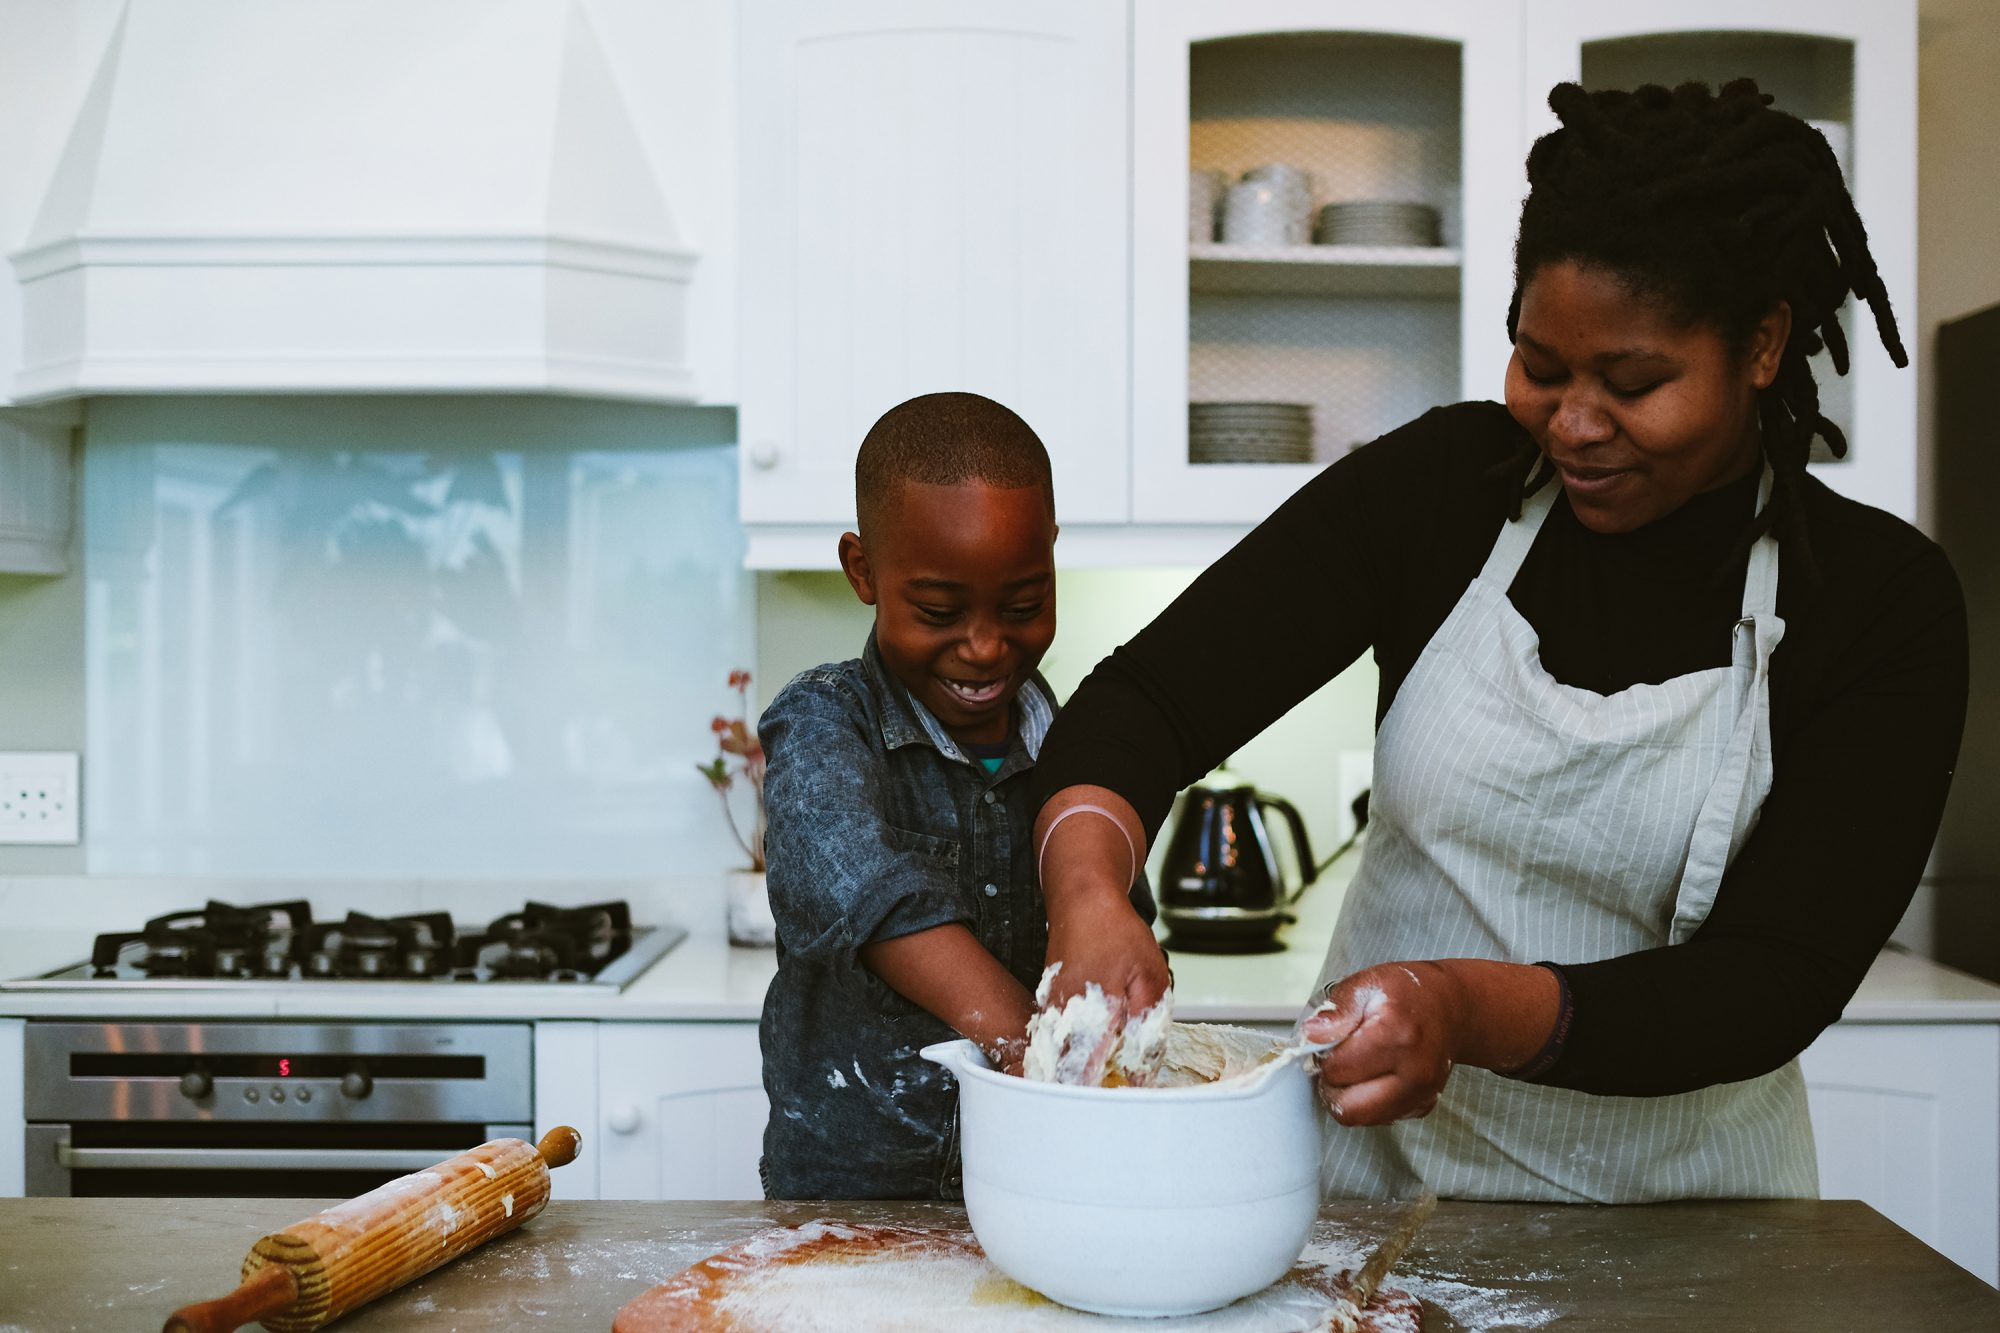 Mother and son mix to make dough